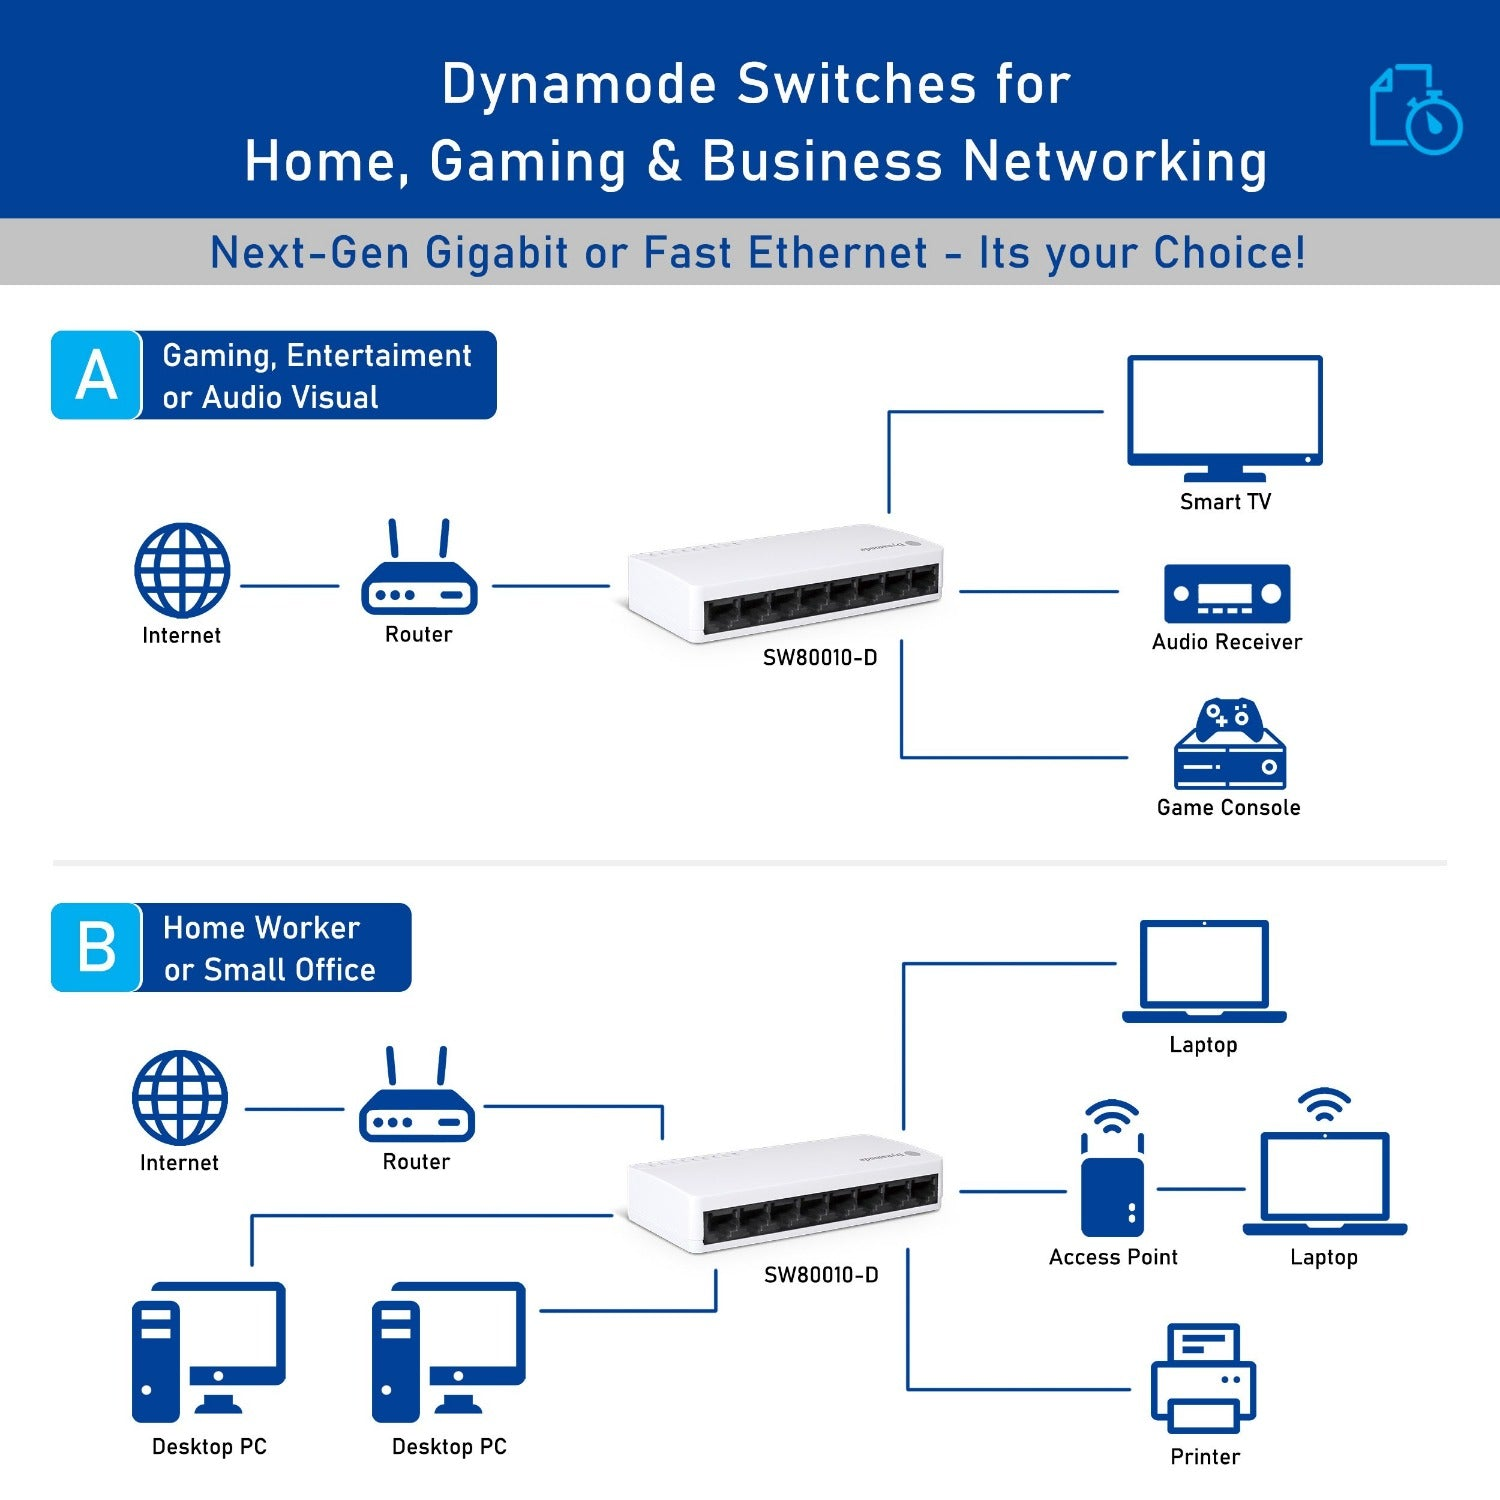 Dynamode SW80010-D 8 Port Fast Ethernet Switch